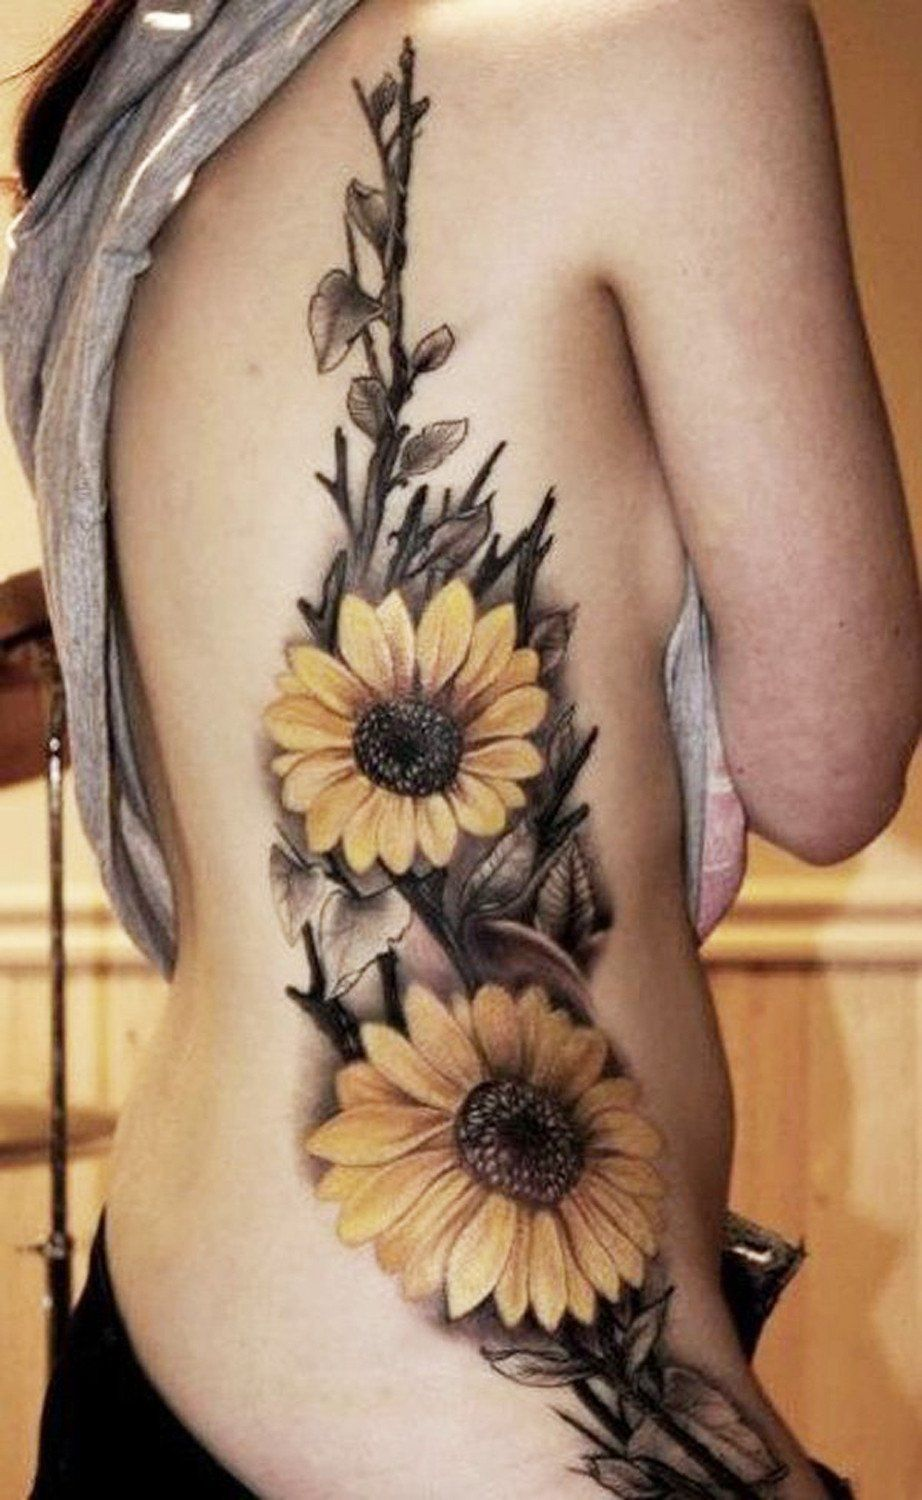 e69528d68 Realistic Colored Yellow Sunflower Floral Flower Side Rib Tattoo Ideas for  Women at MyBodiArt.com